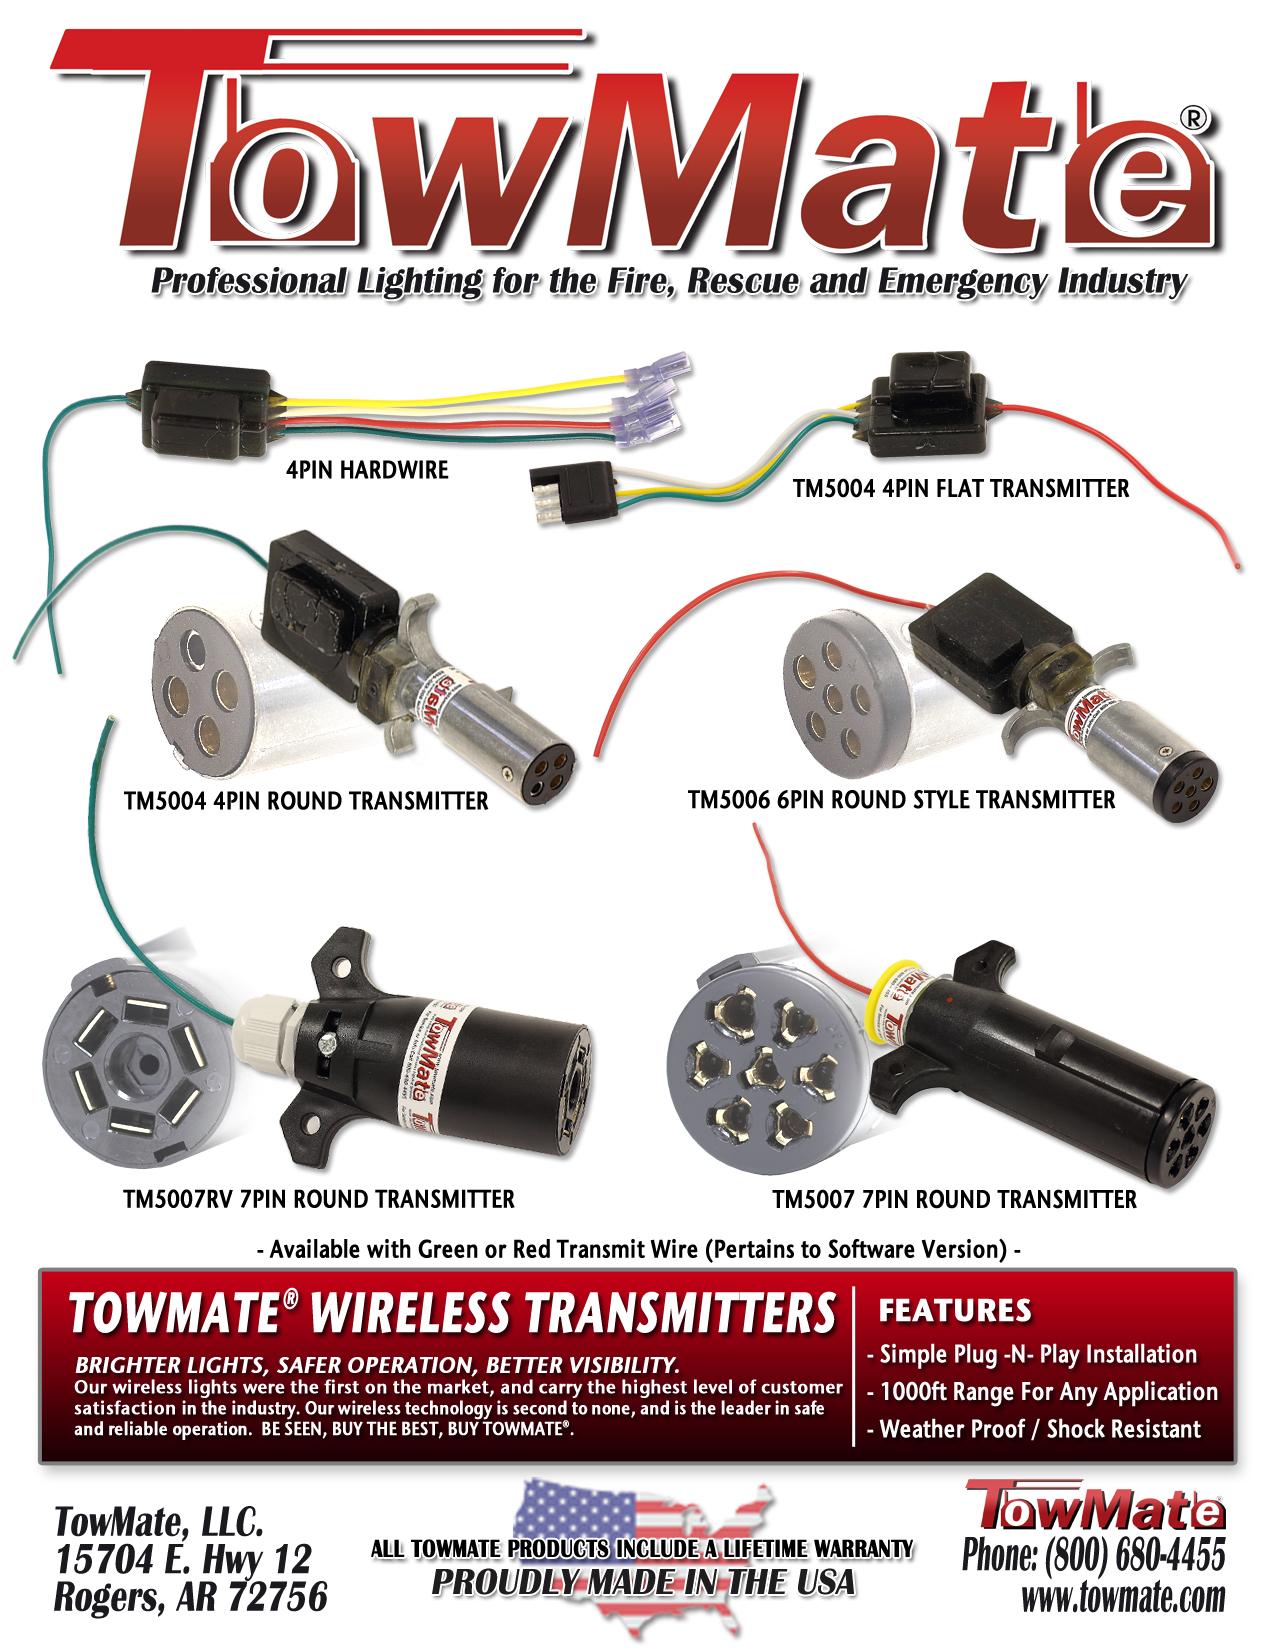 Towmate Wiring Diagram 22 Images Diagrams For Jerr Dan Light Bar Manuals Brochures Transmitters Combosheet 02 At